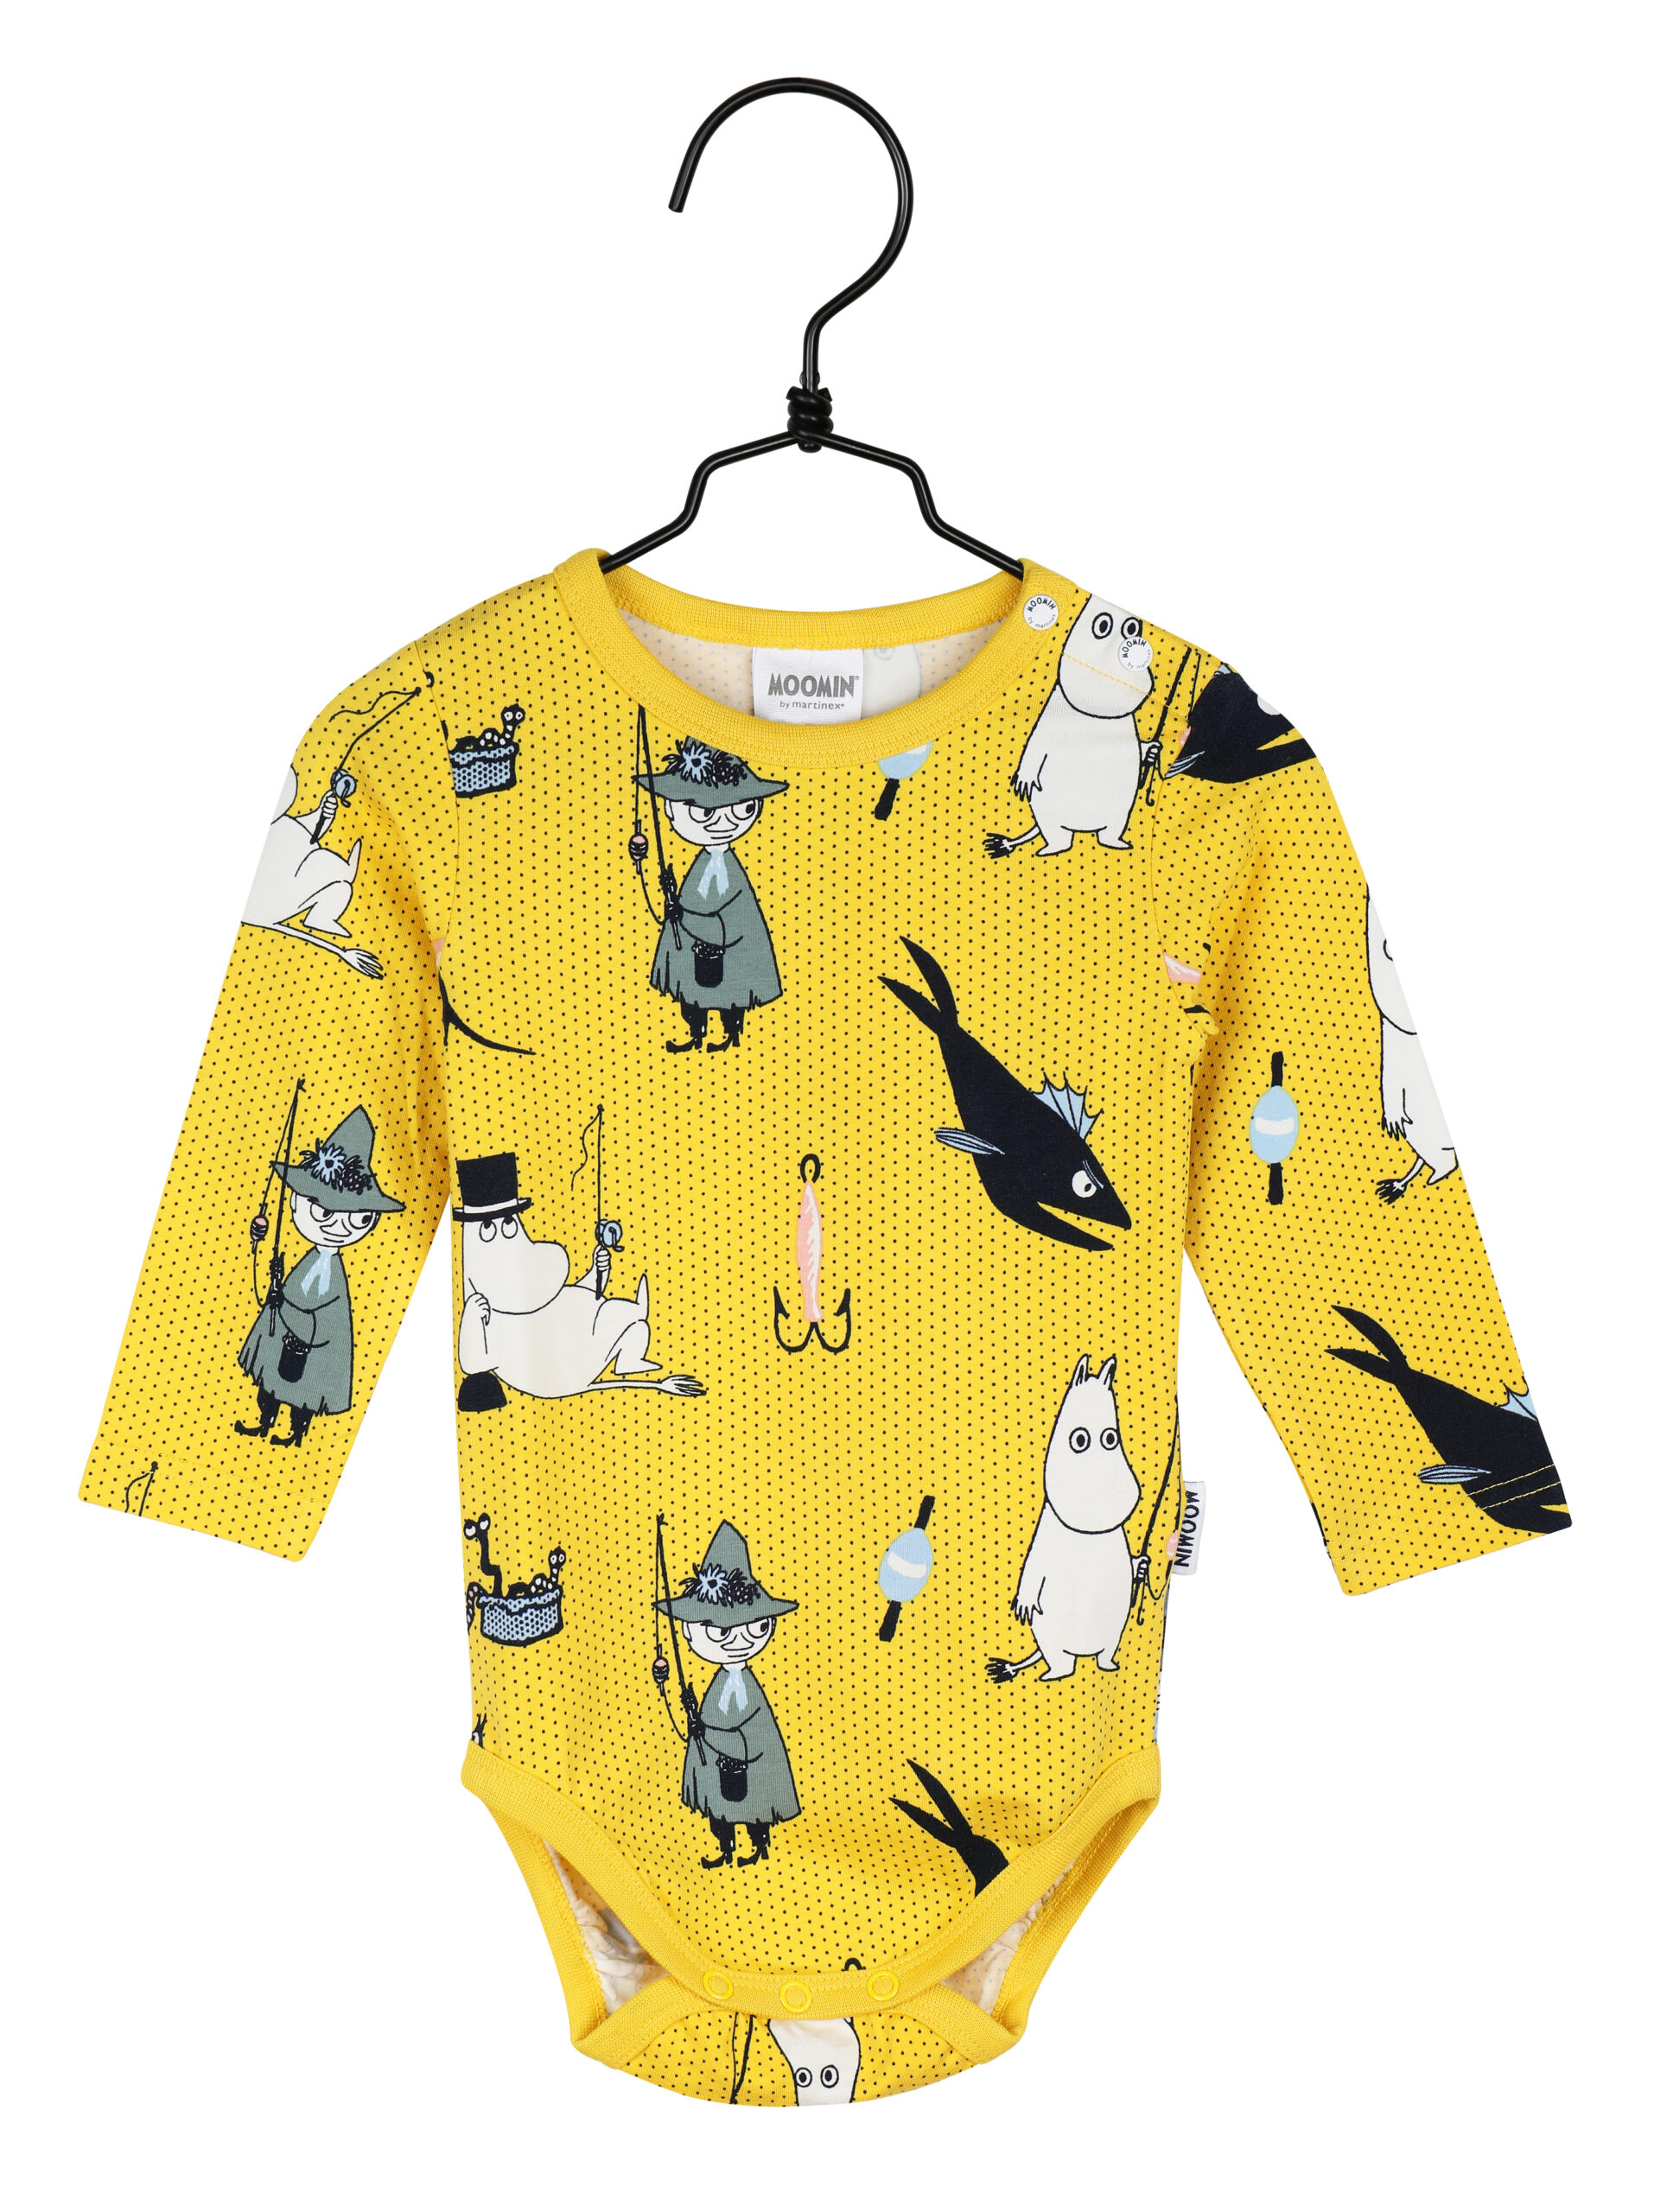 Martinex Moomin Pals Bodysuit Yellow